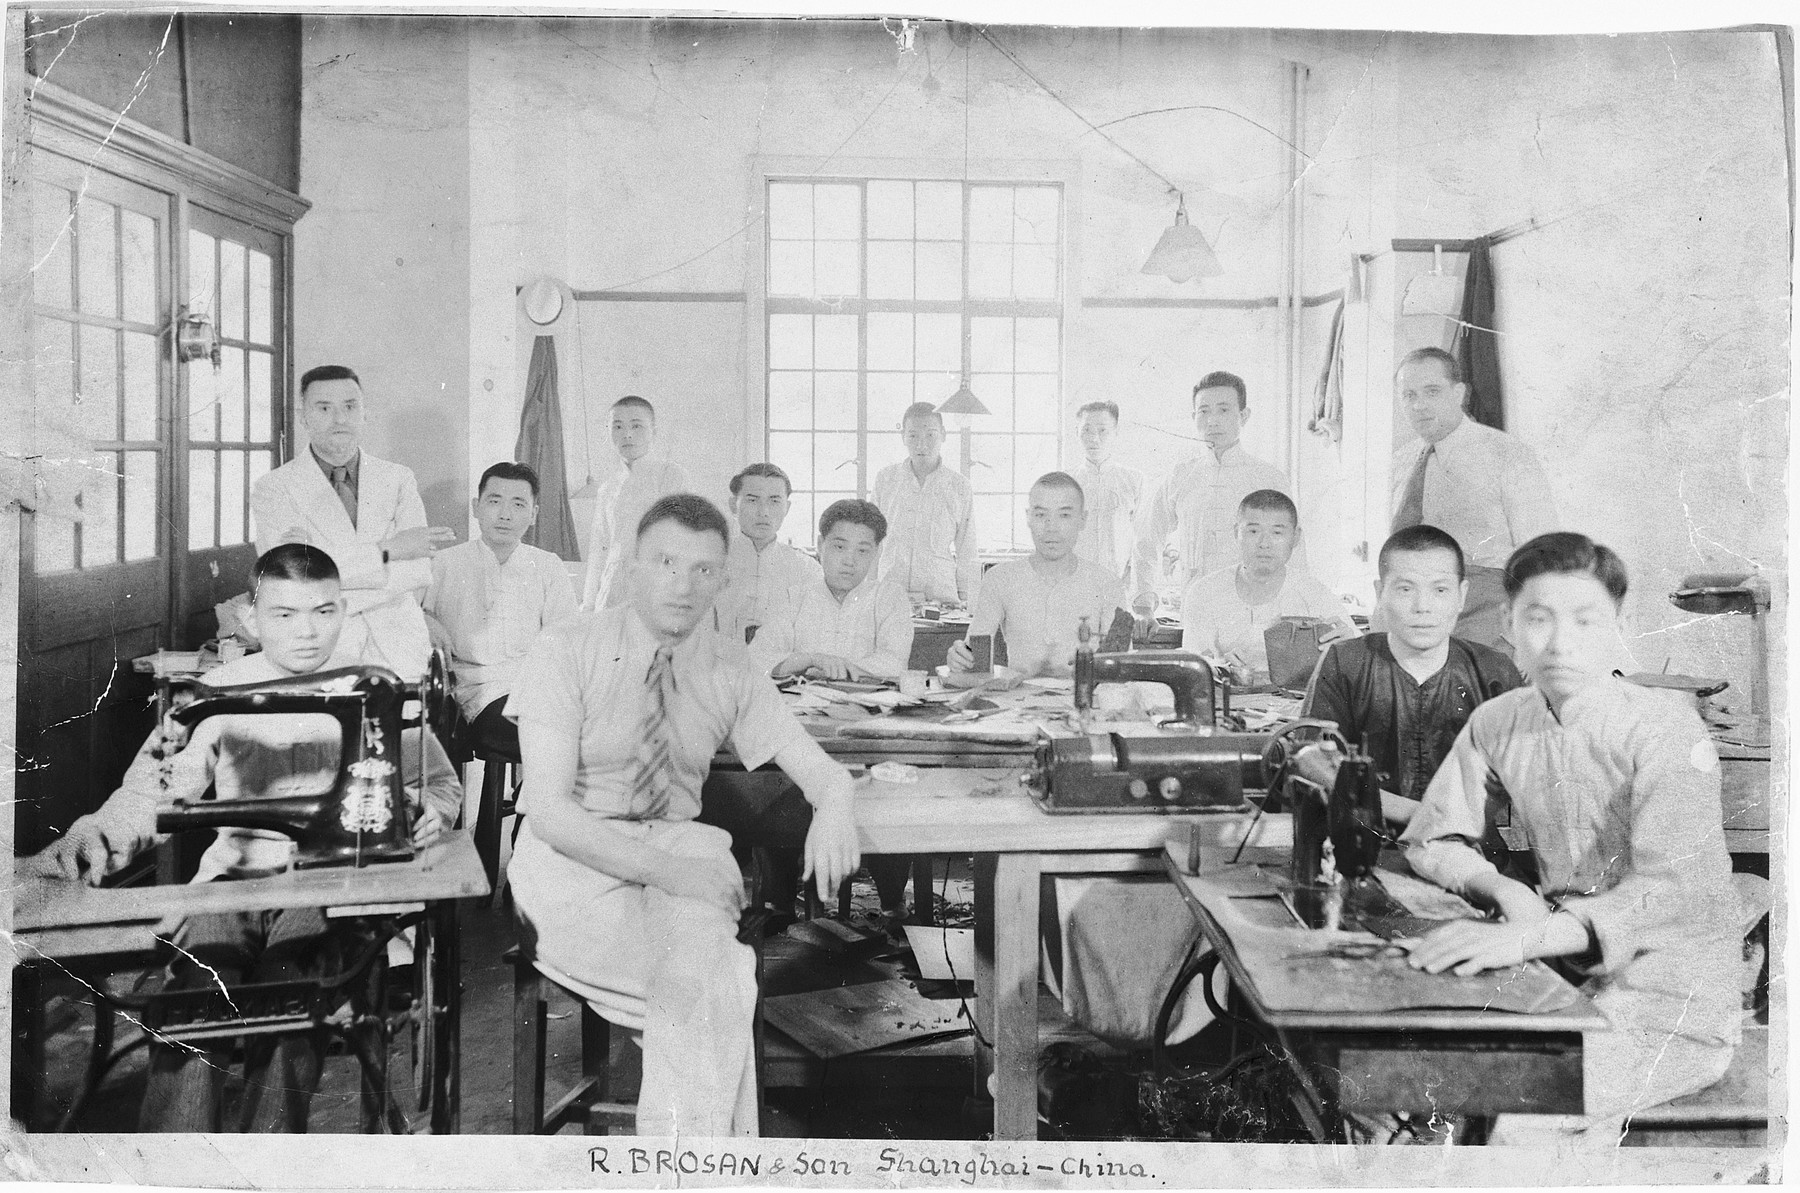 Employees of Rudolf Brosan's leather workshop in Shanghai.